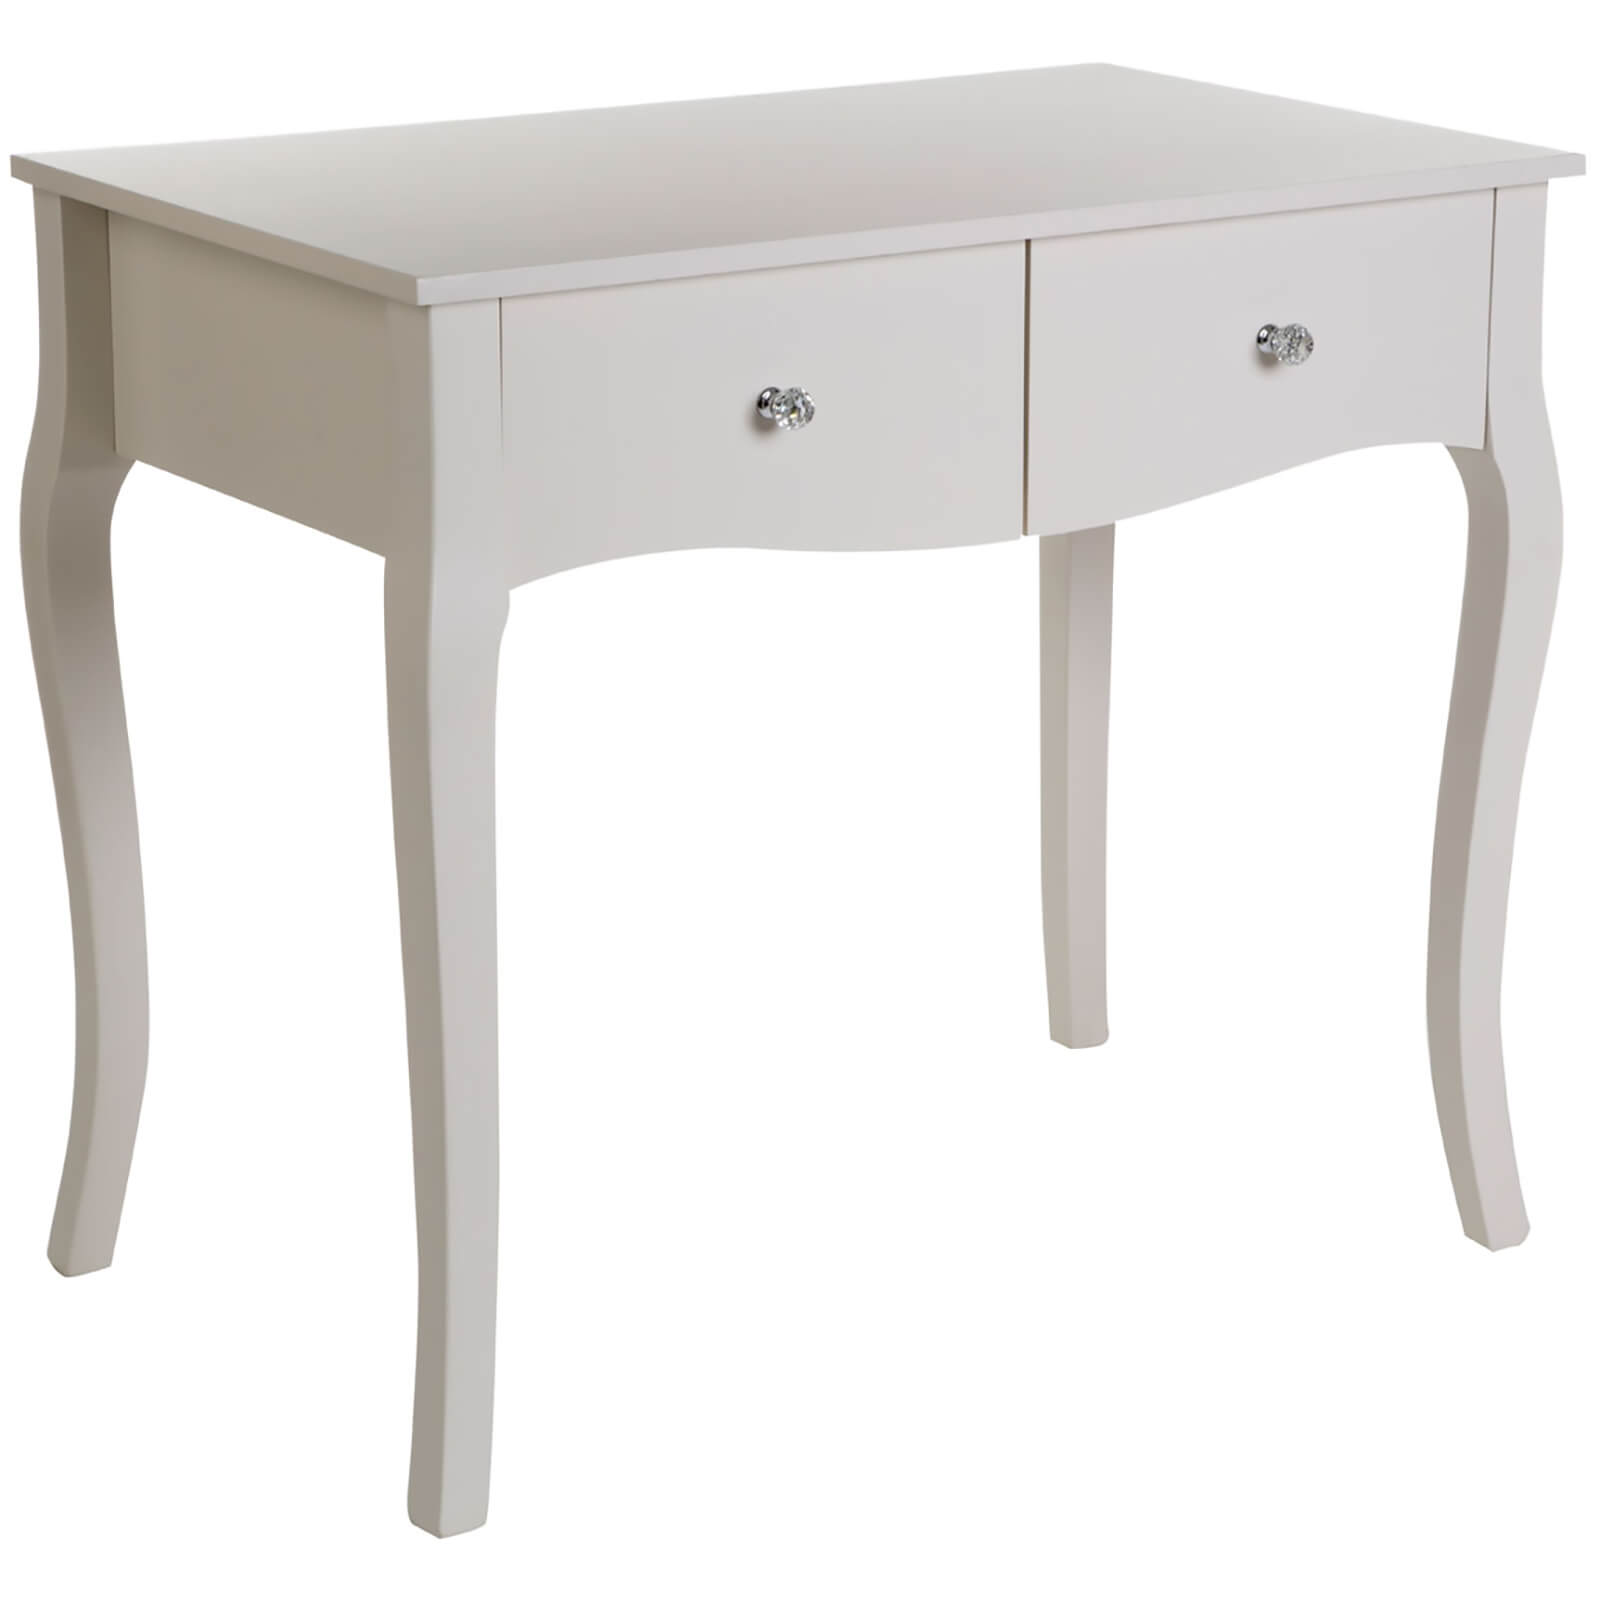 Premier Housewares Emily Kids Dressing Table - Ivory/Crystal Handles